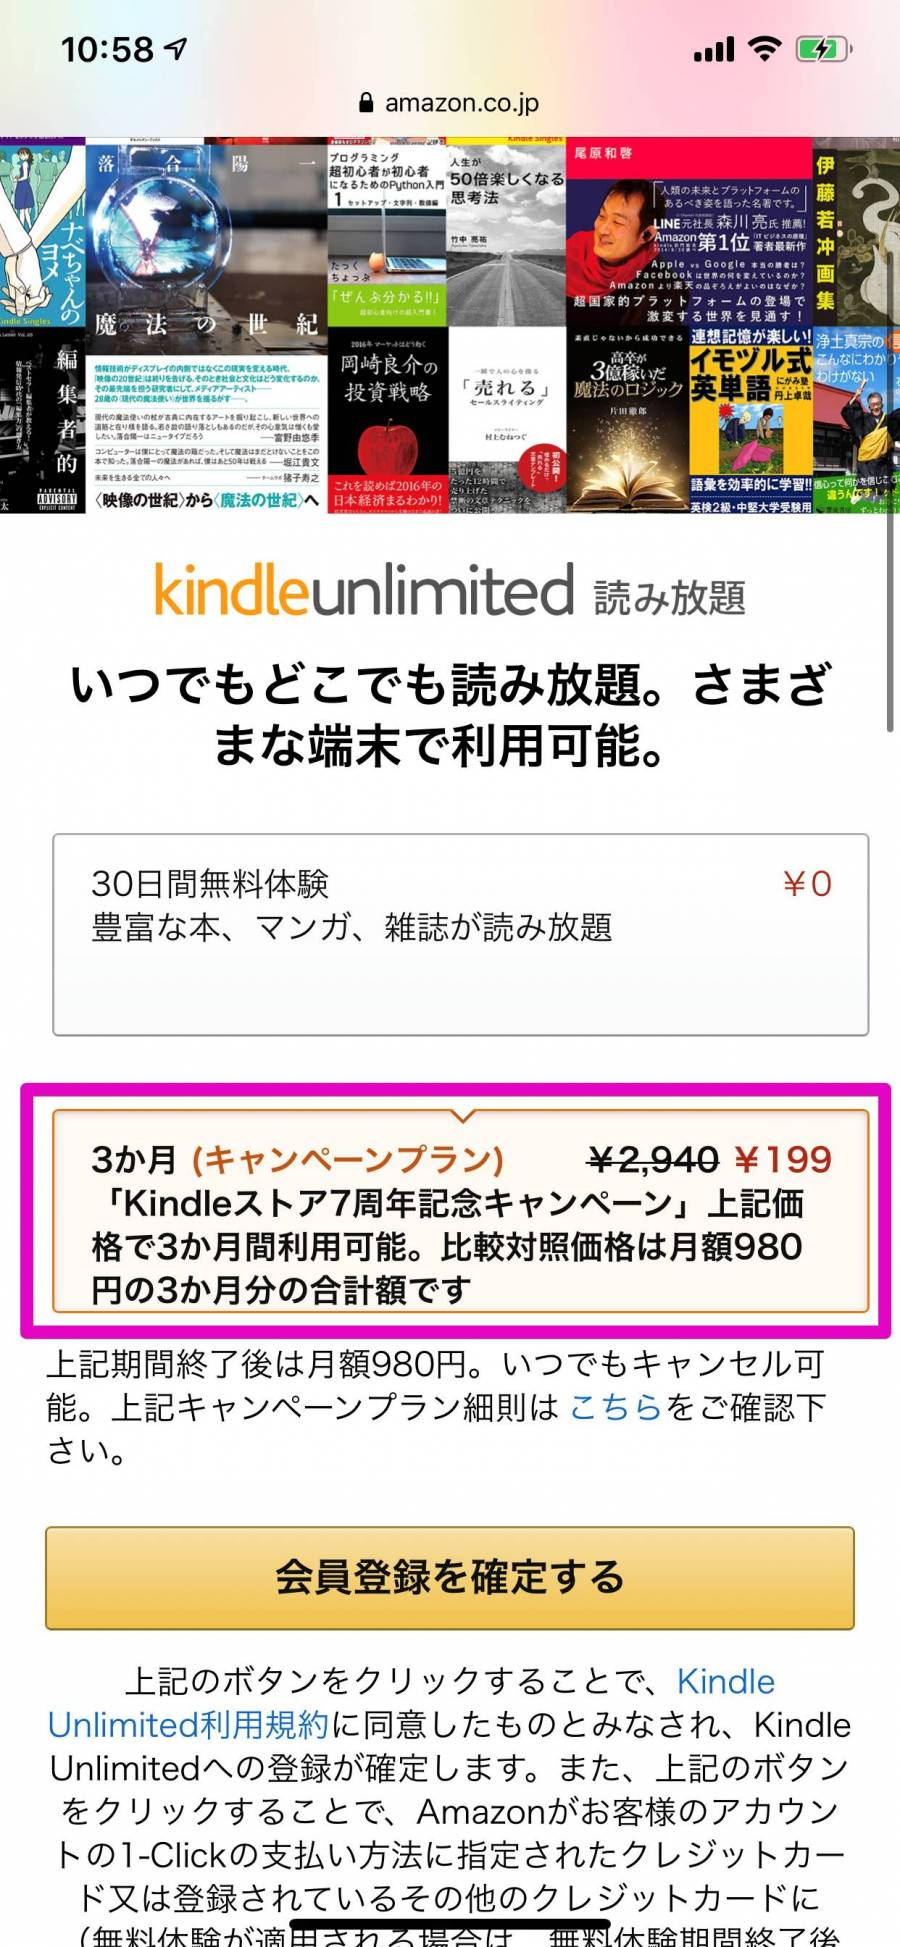 Kindle Unlimitedキャンペーンに登録